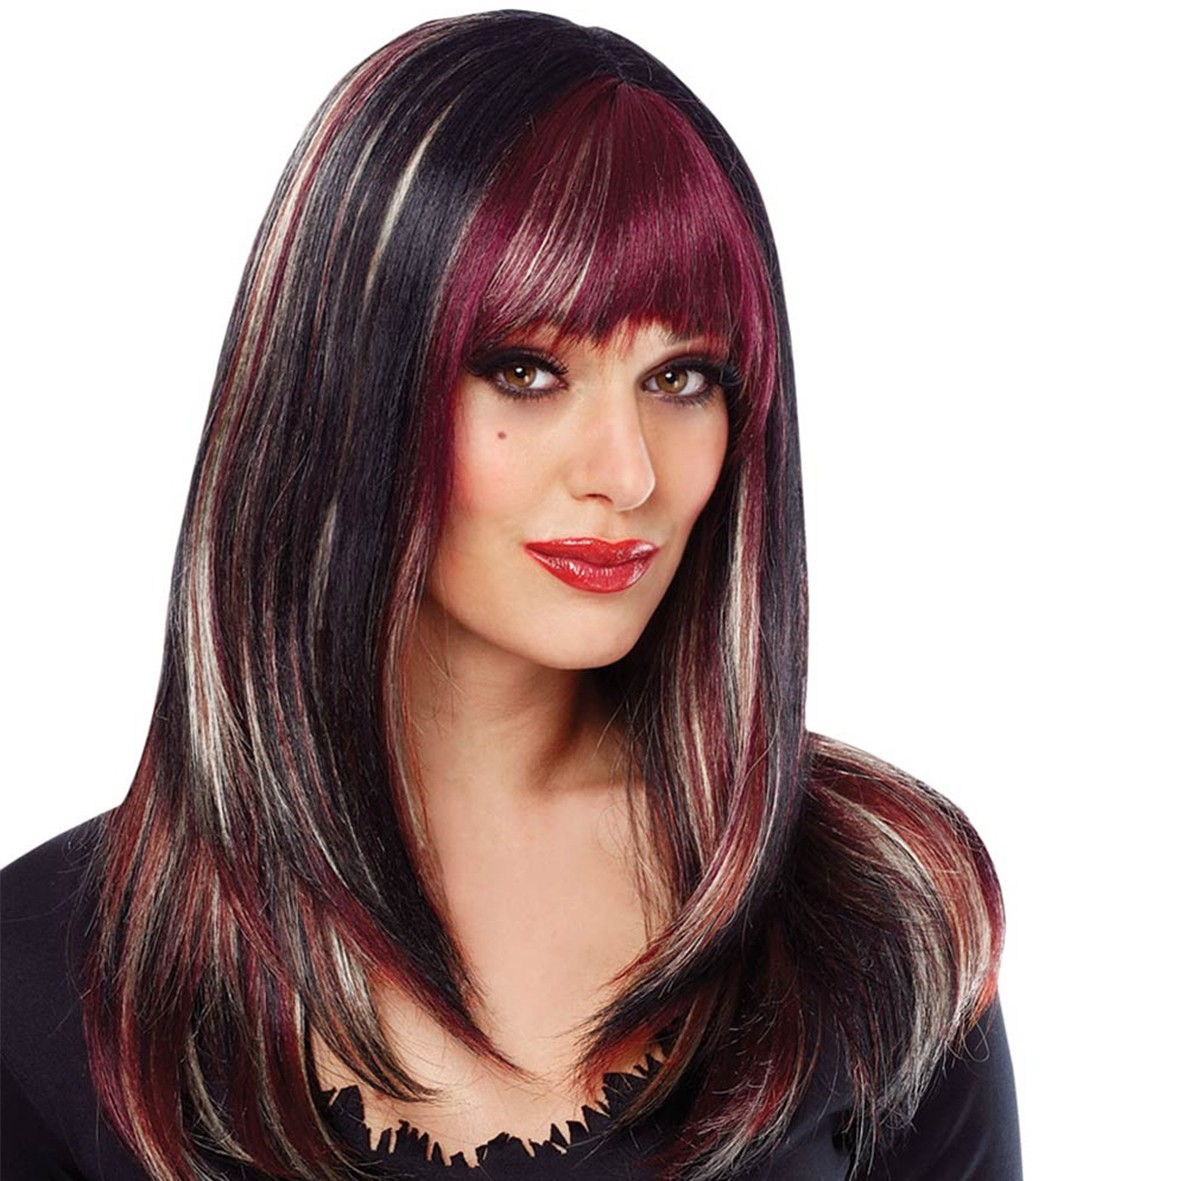 20 Hottest New Highlights for Black Hair - PoPular Haircuts Highlights in red hair pictures